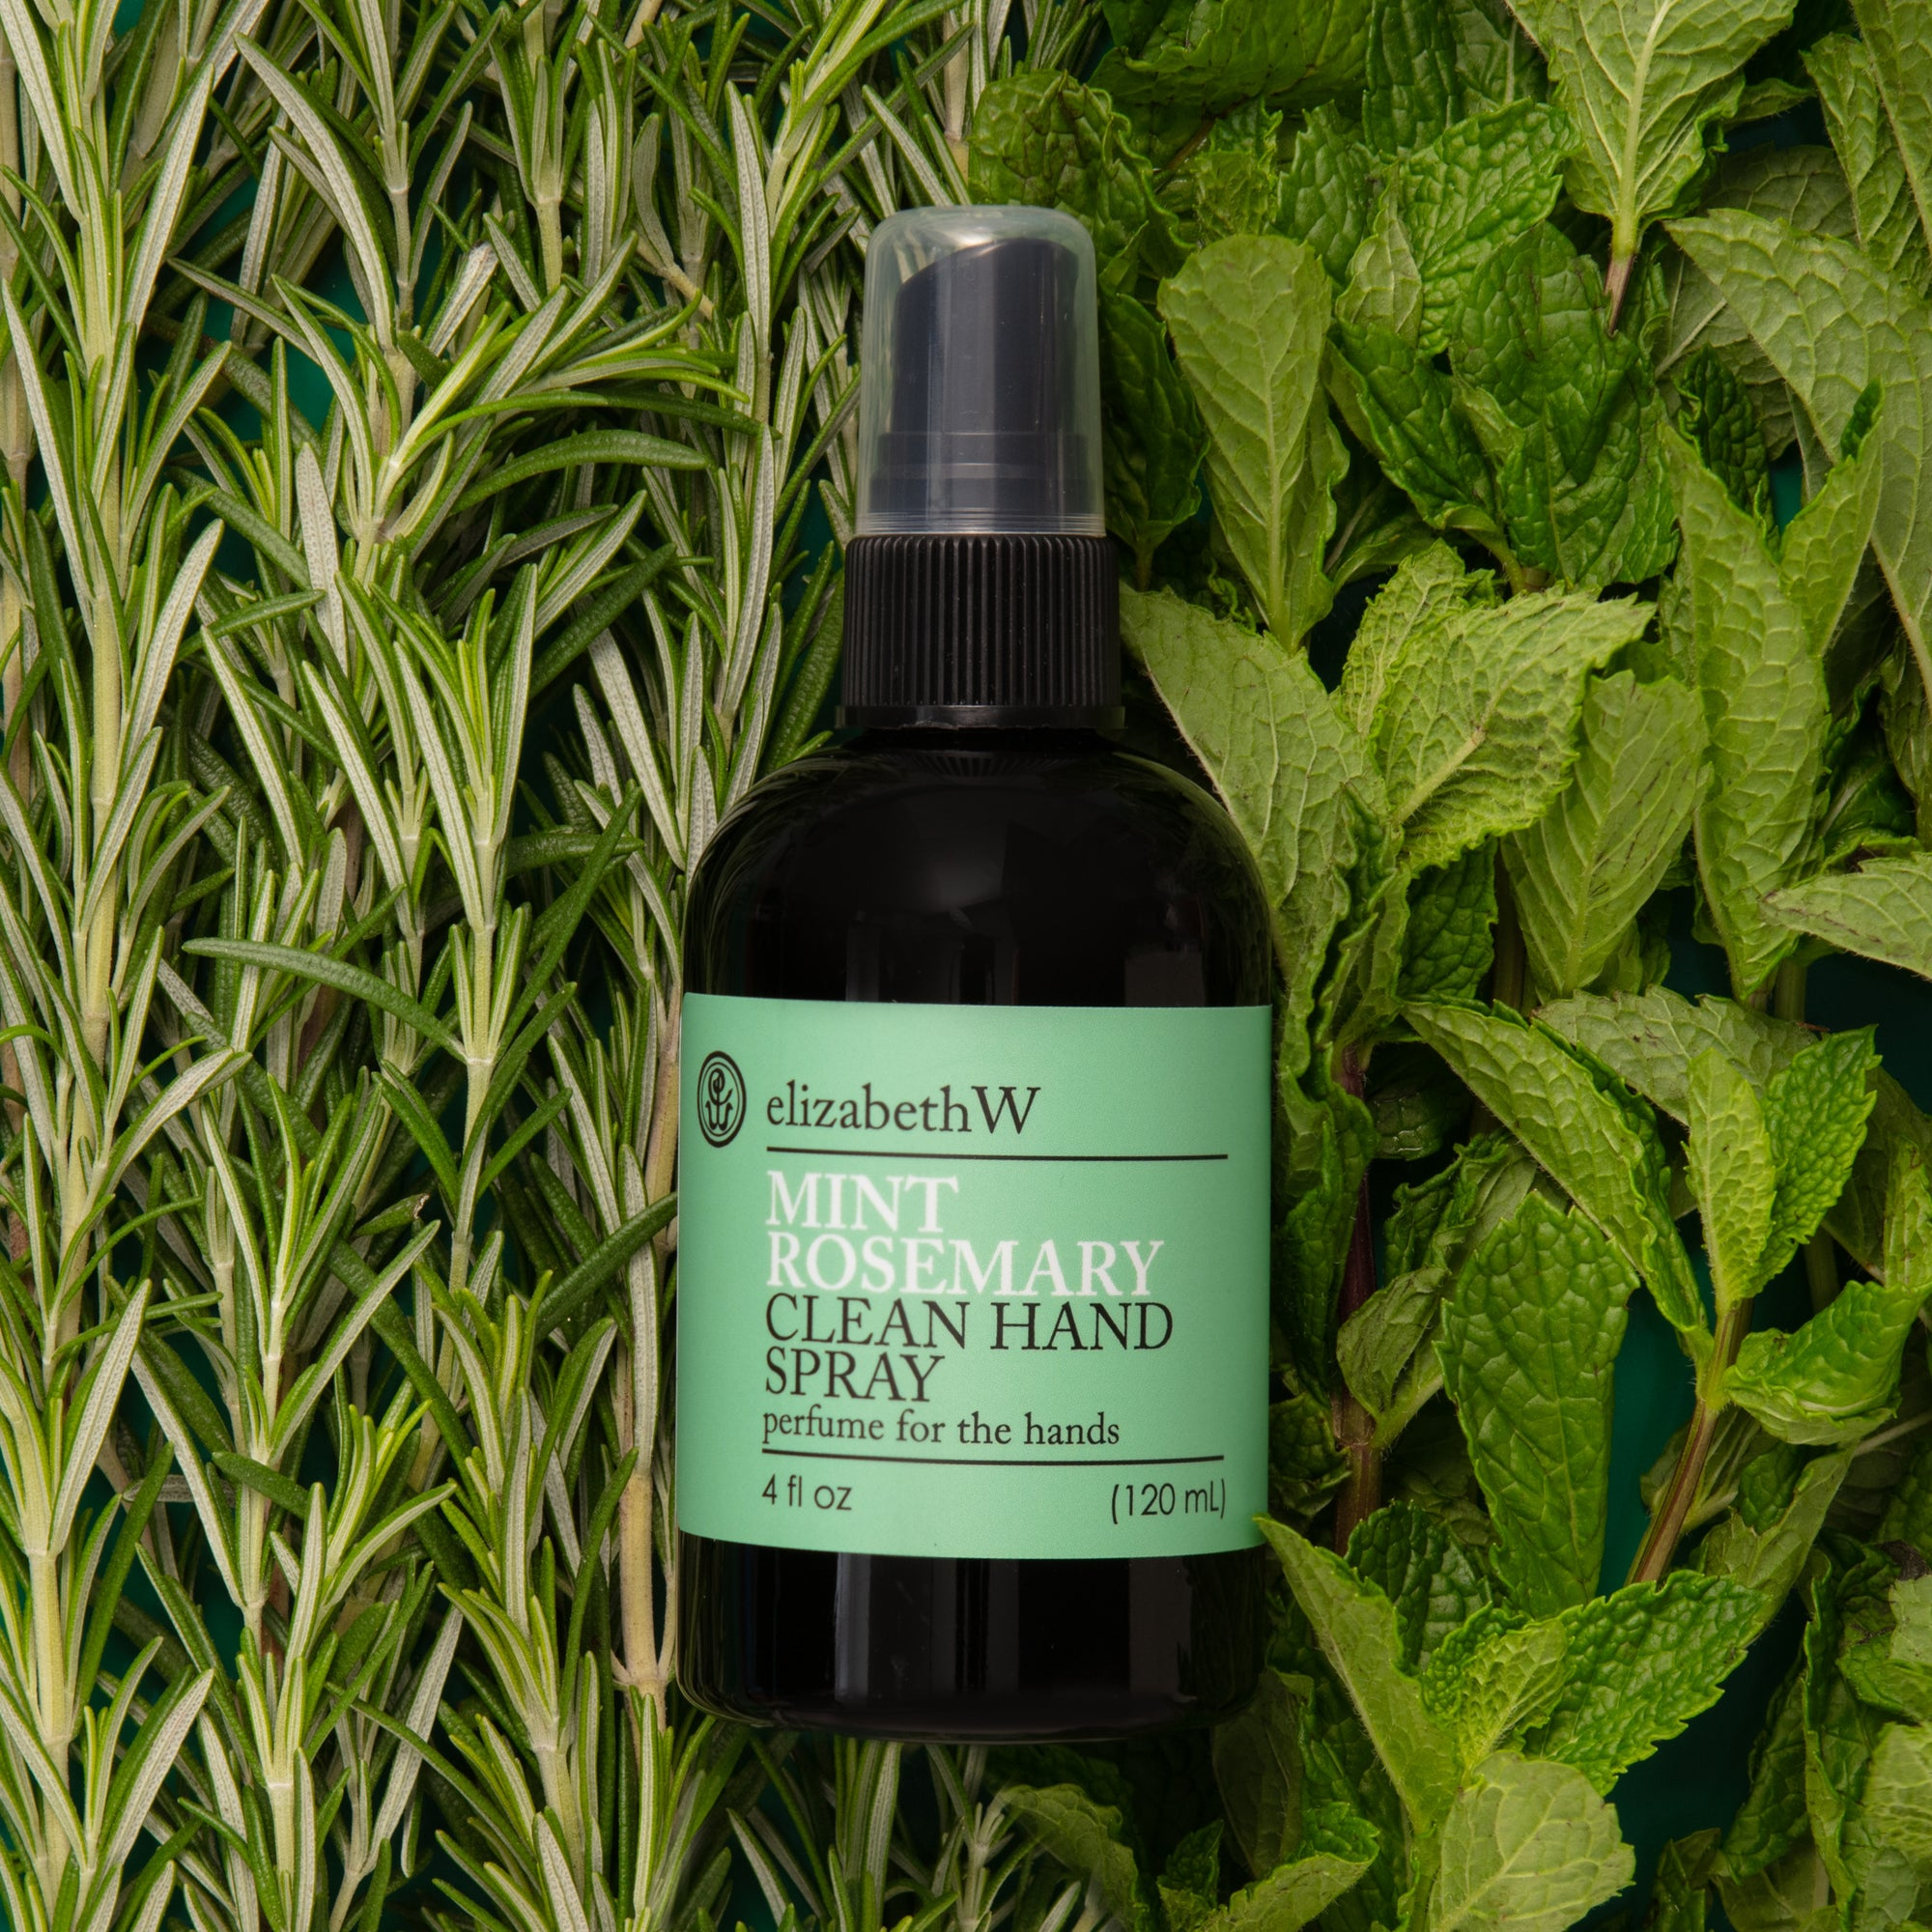 Mint Rosemary Clean Hand Spray by elizabeth W